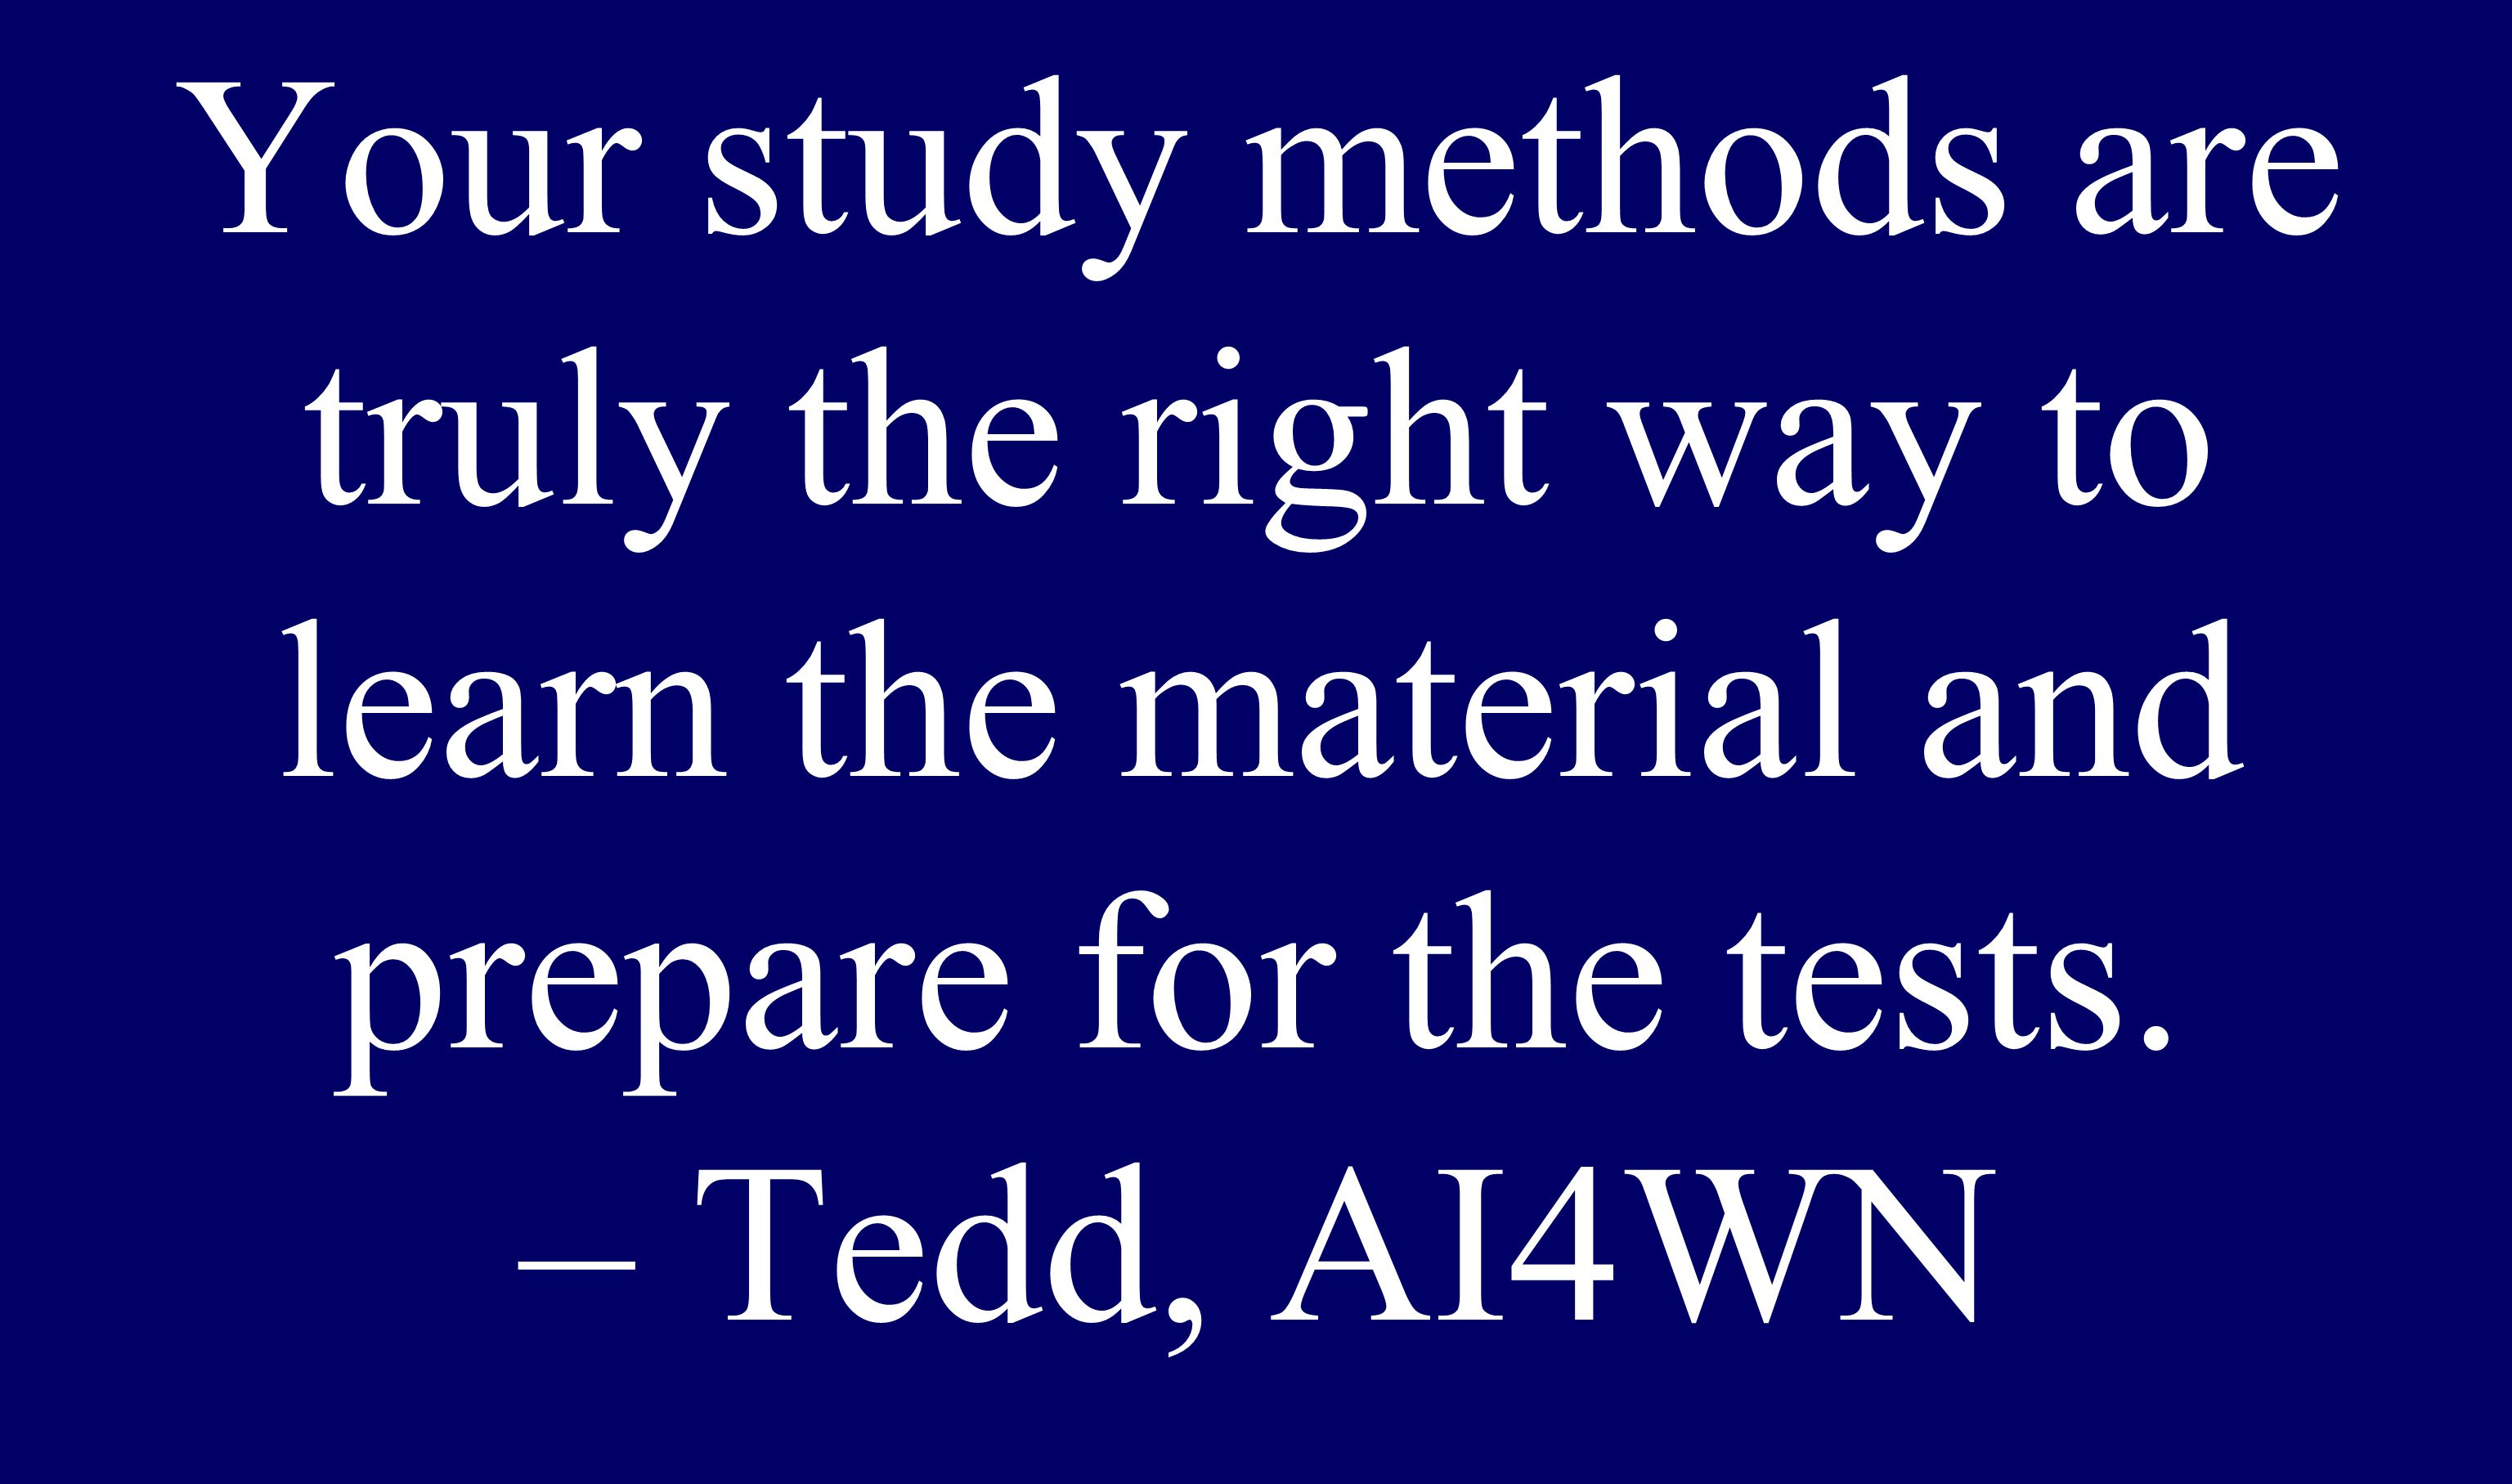 Your study methods are truly the right way to learn the material and prepare for the tests.